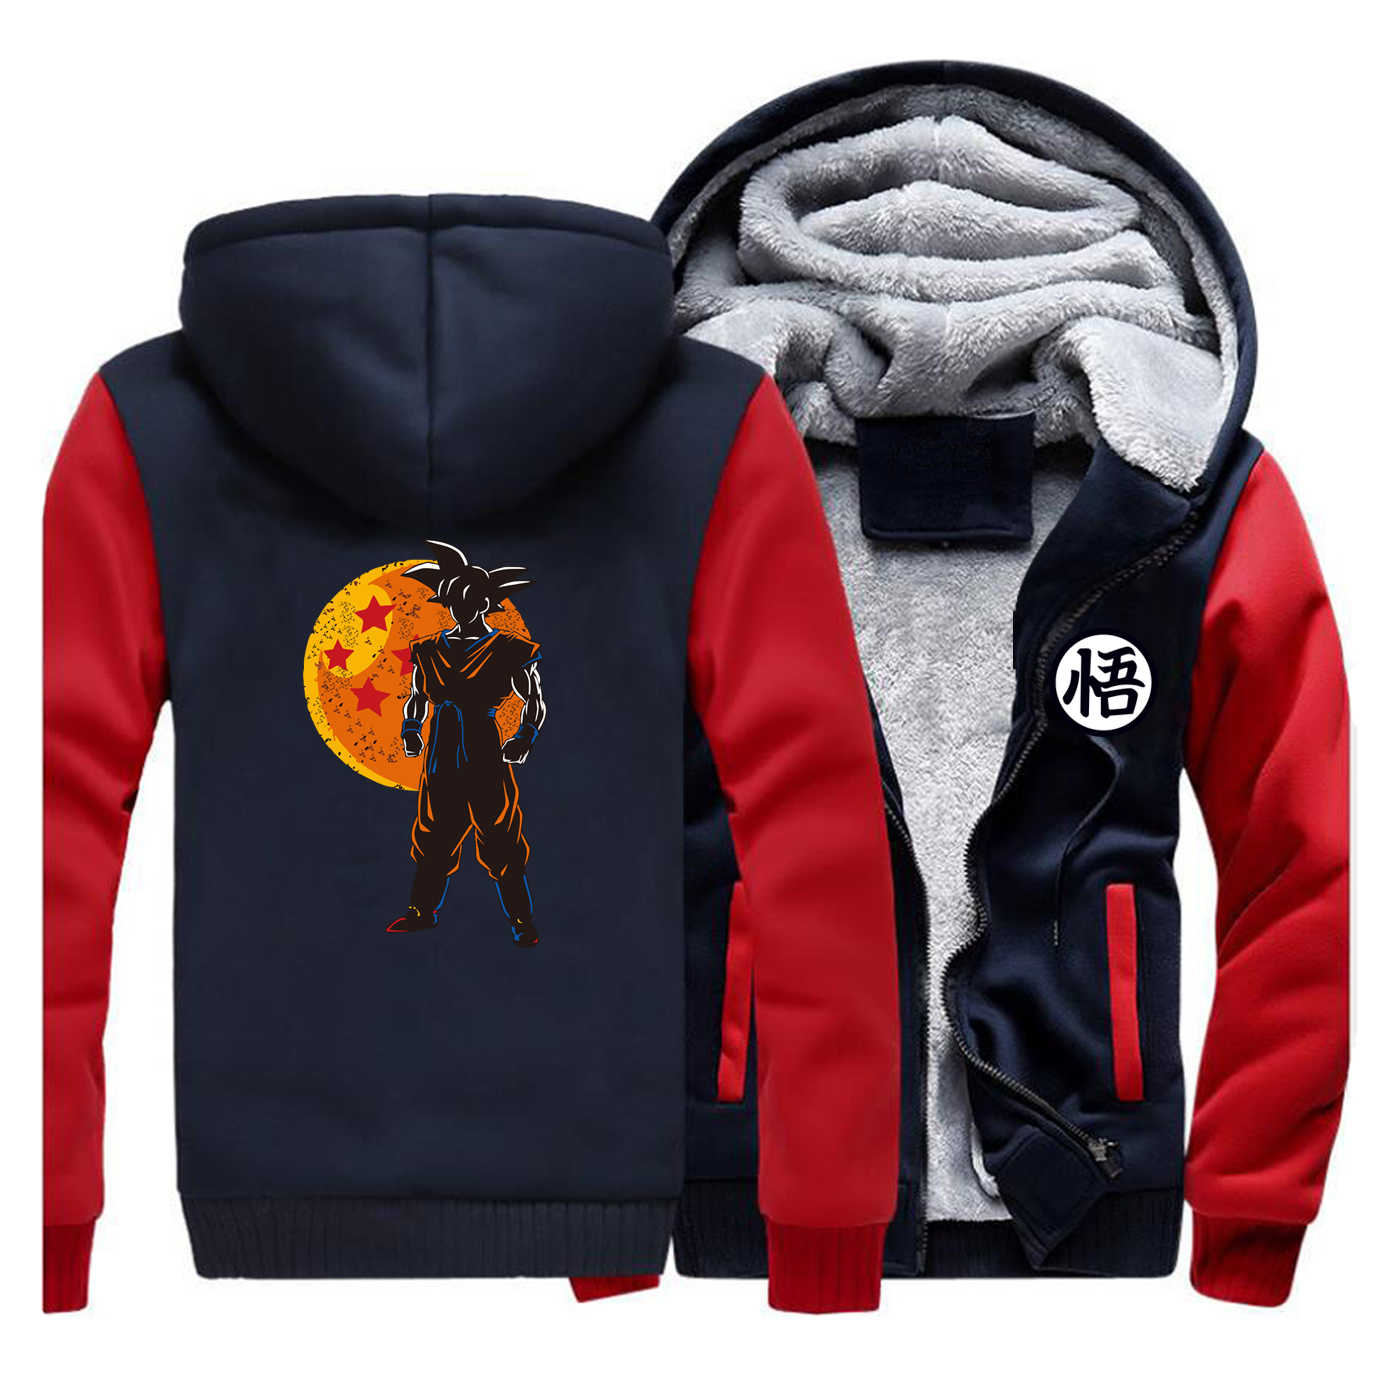 Warme Dicke Fleece Männer Winter Jacke Dragon Ball Mantel Japan Anime Mäntel Hoodies Harajuku Jacken Sweatshirt Streetwear